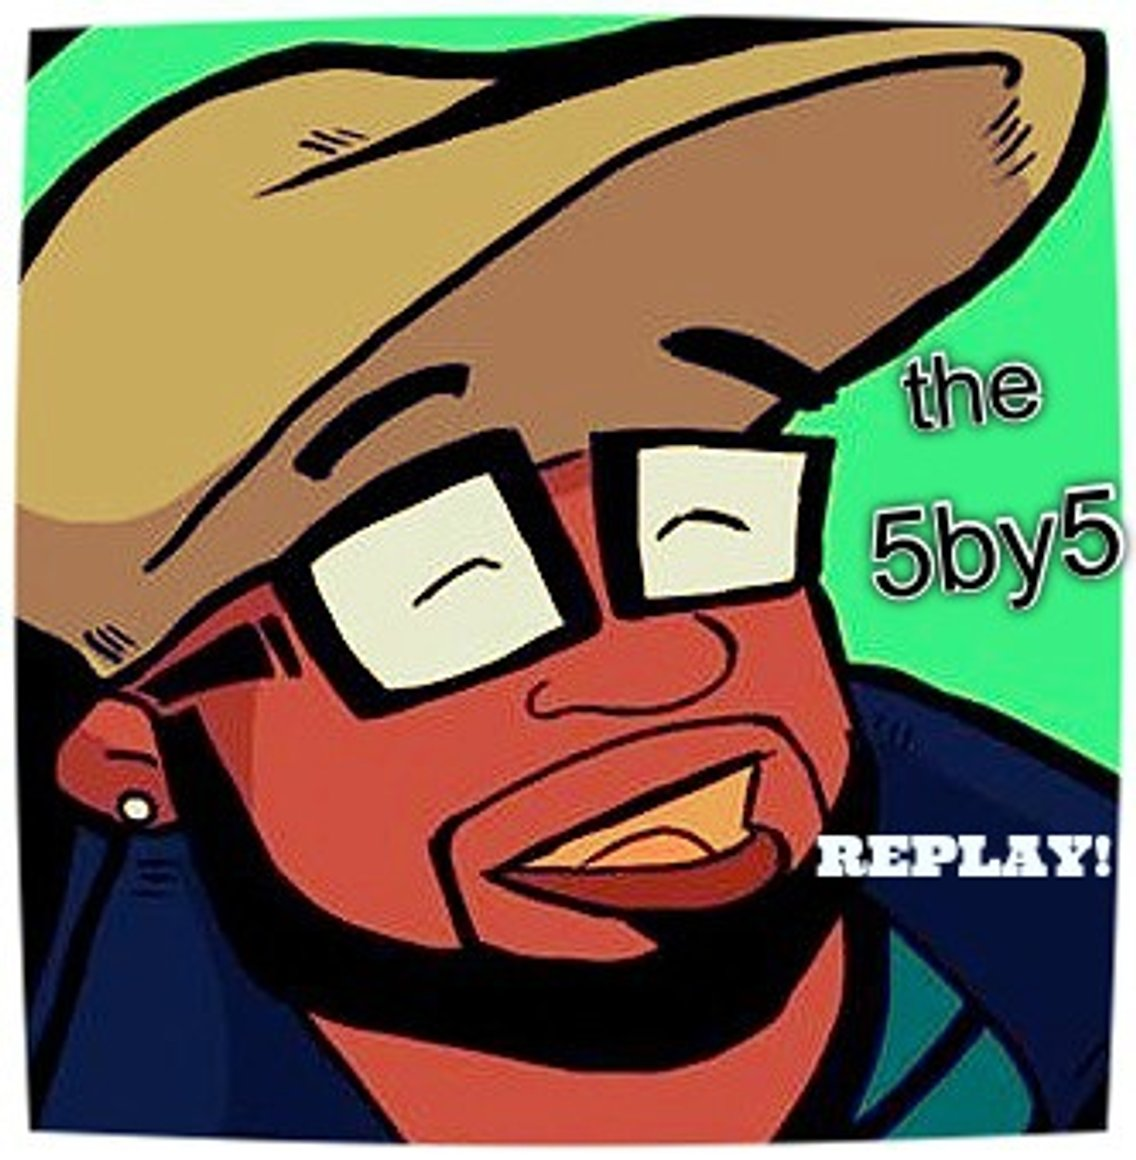 The 5by5 Replay - Cover Image